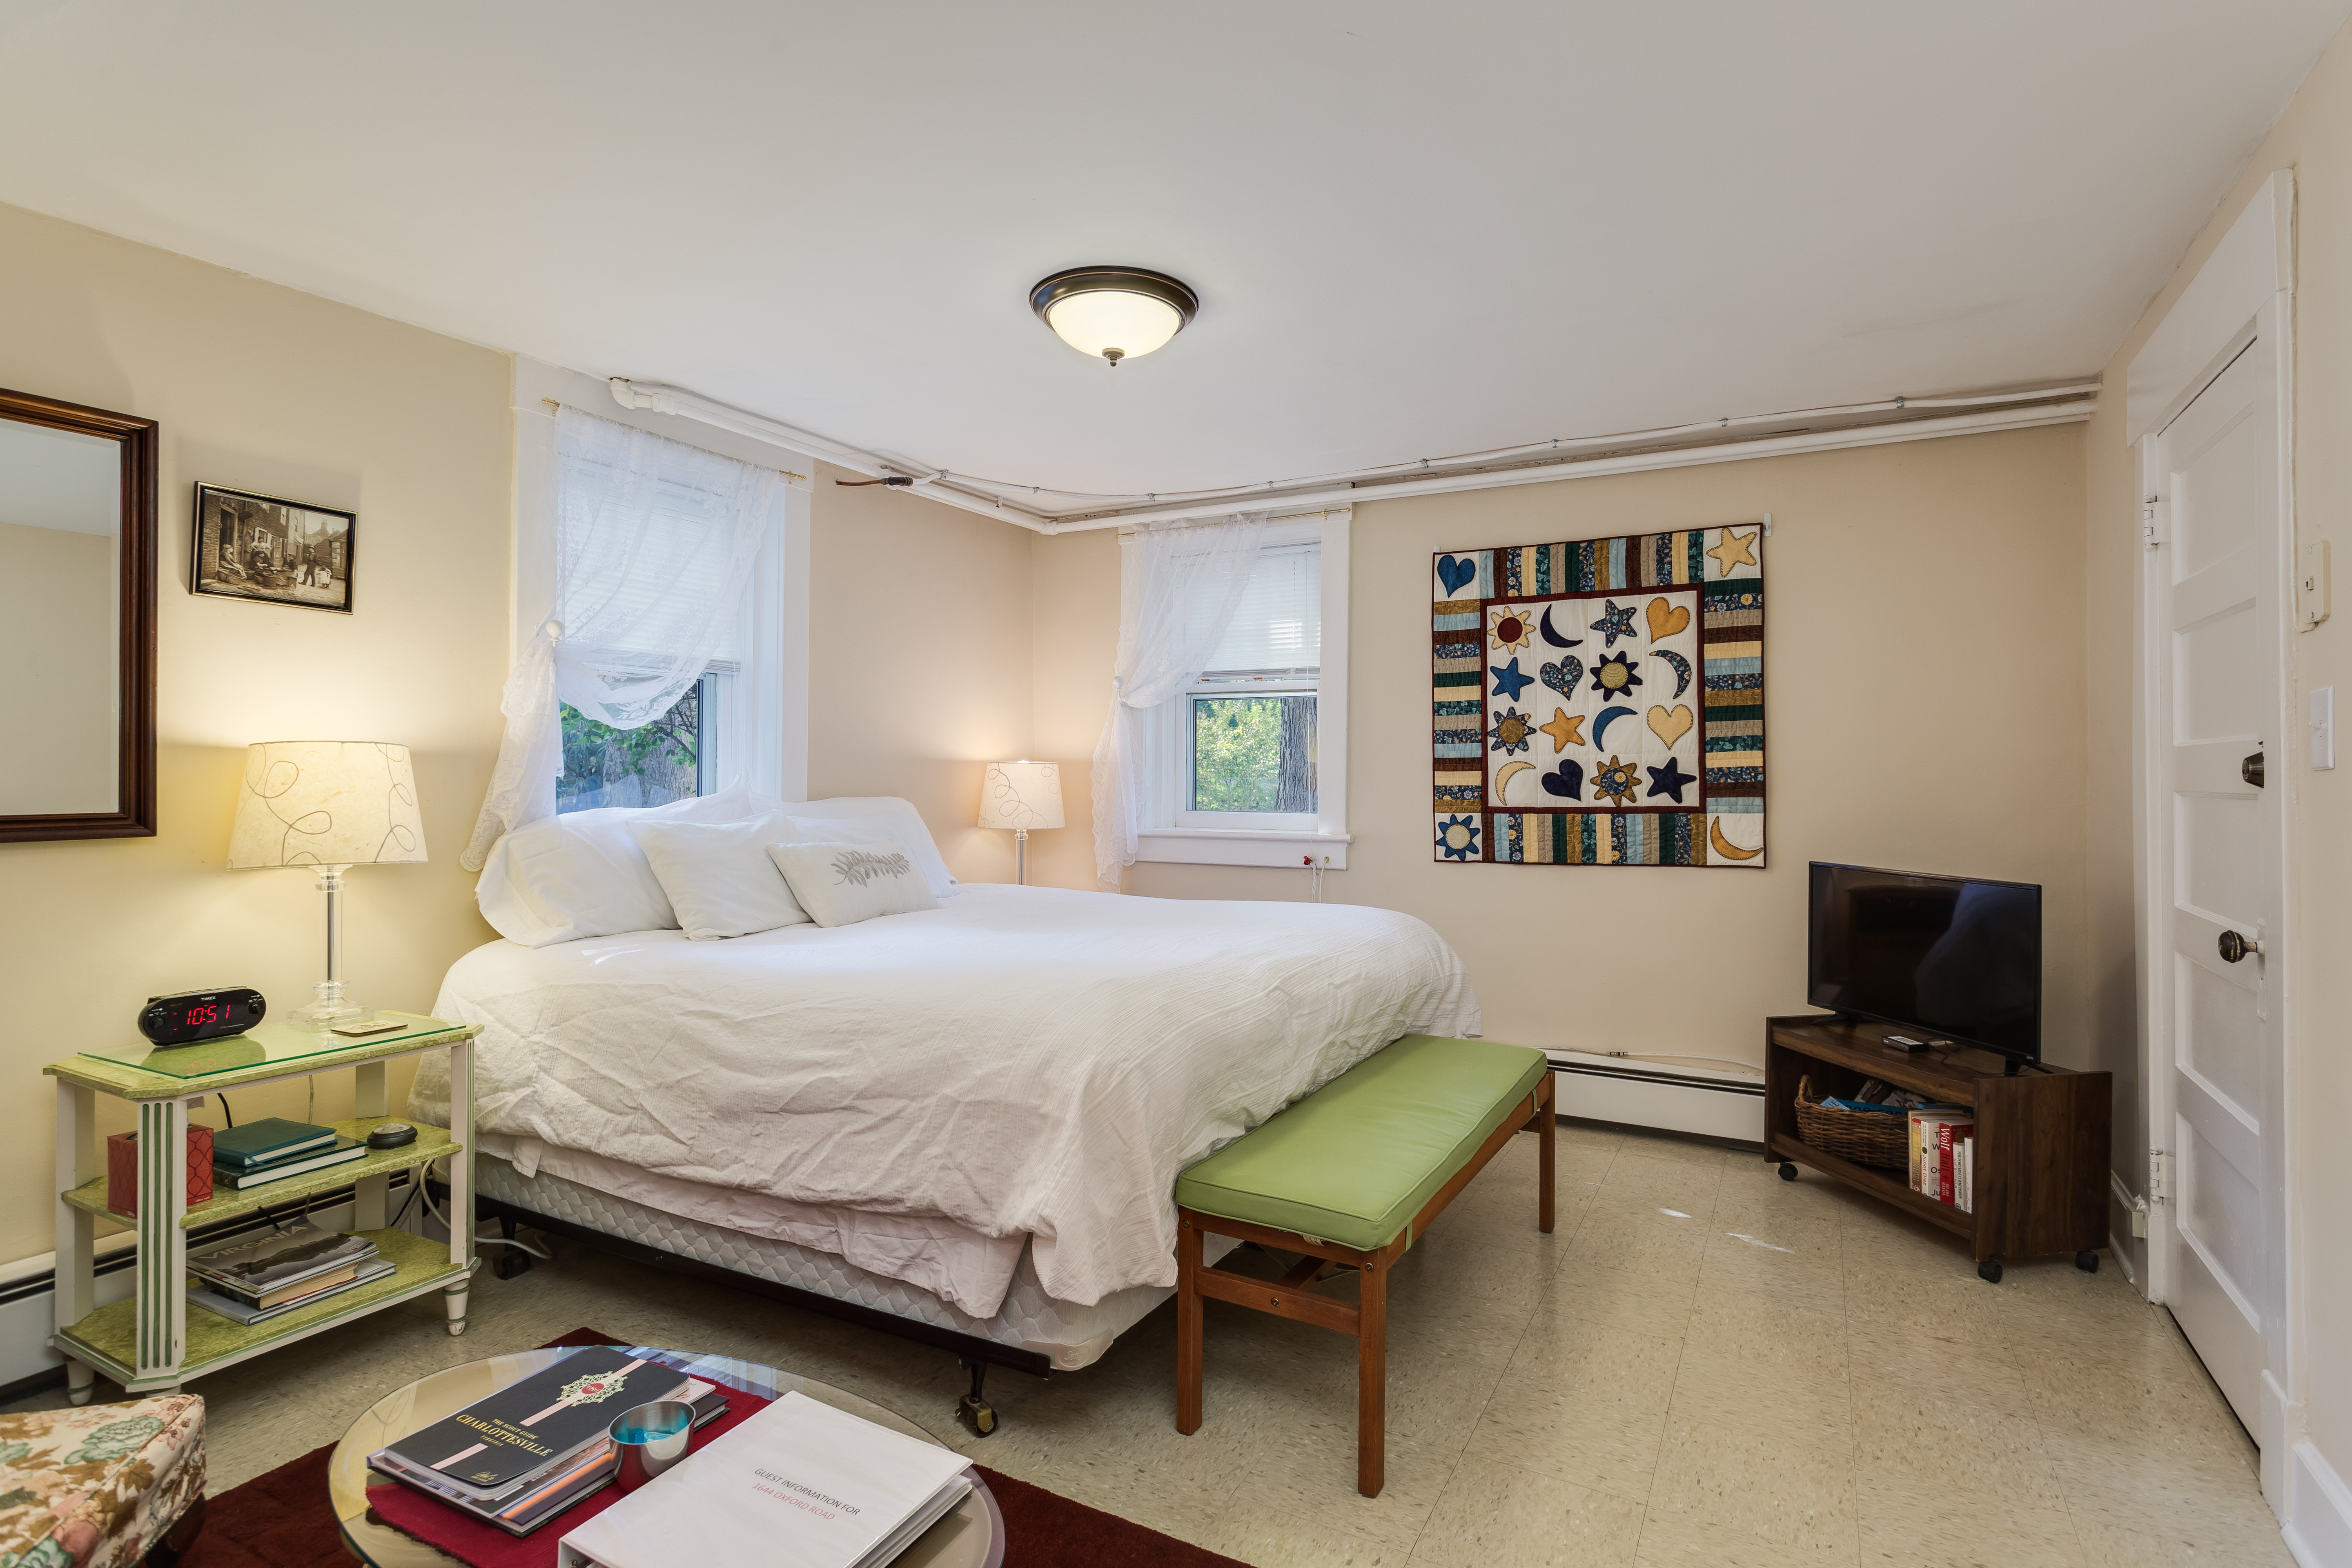 Oxford Suite - One Bedroom Studio Extended Stays in Charlottesville